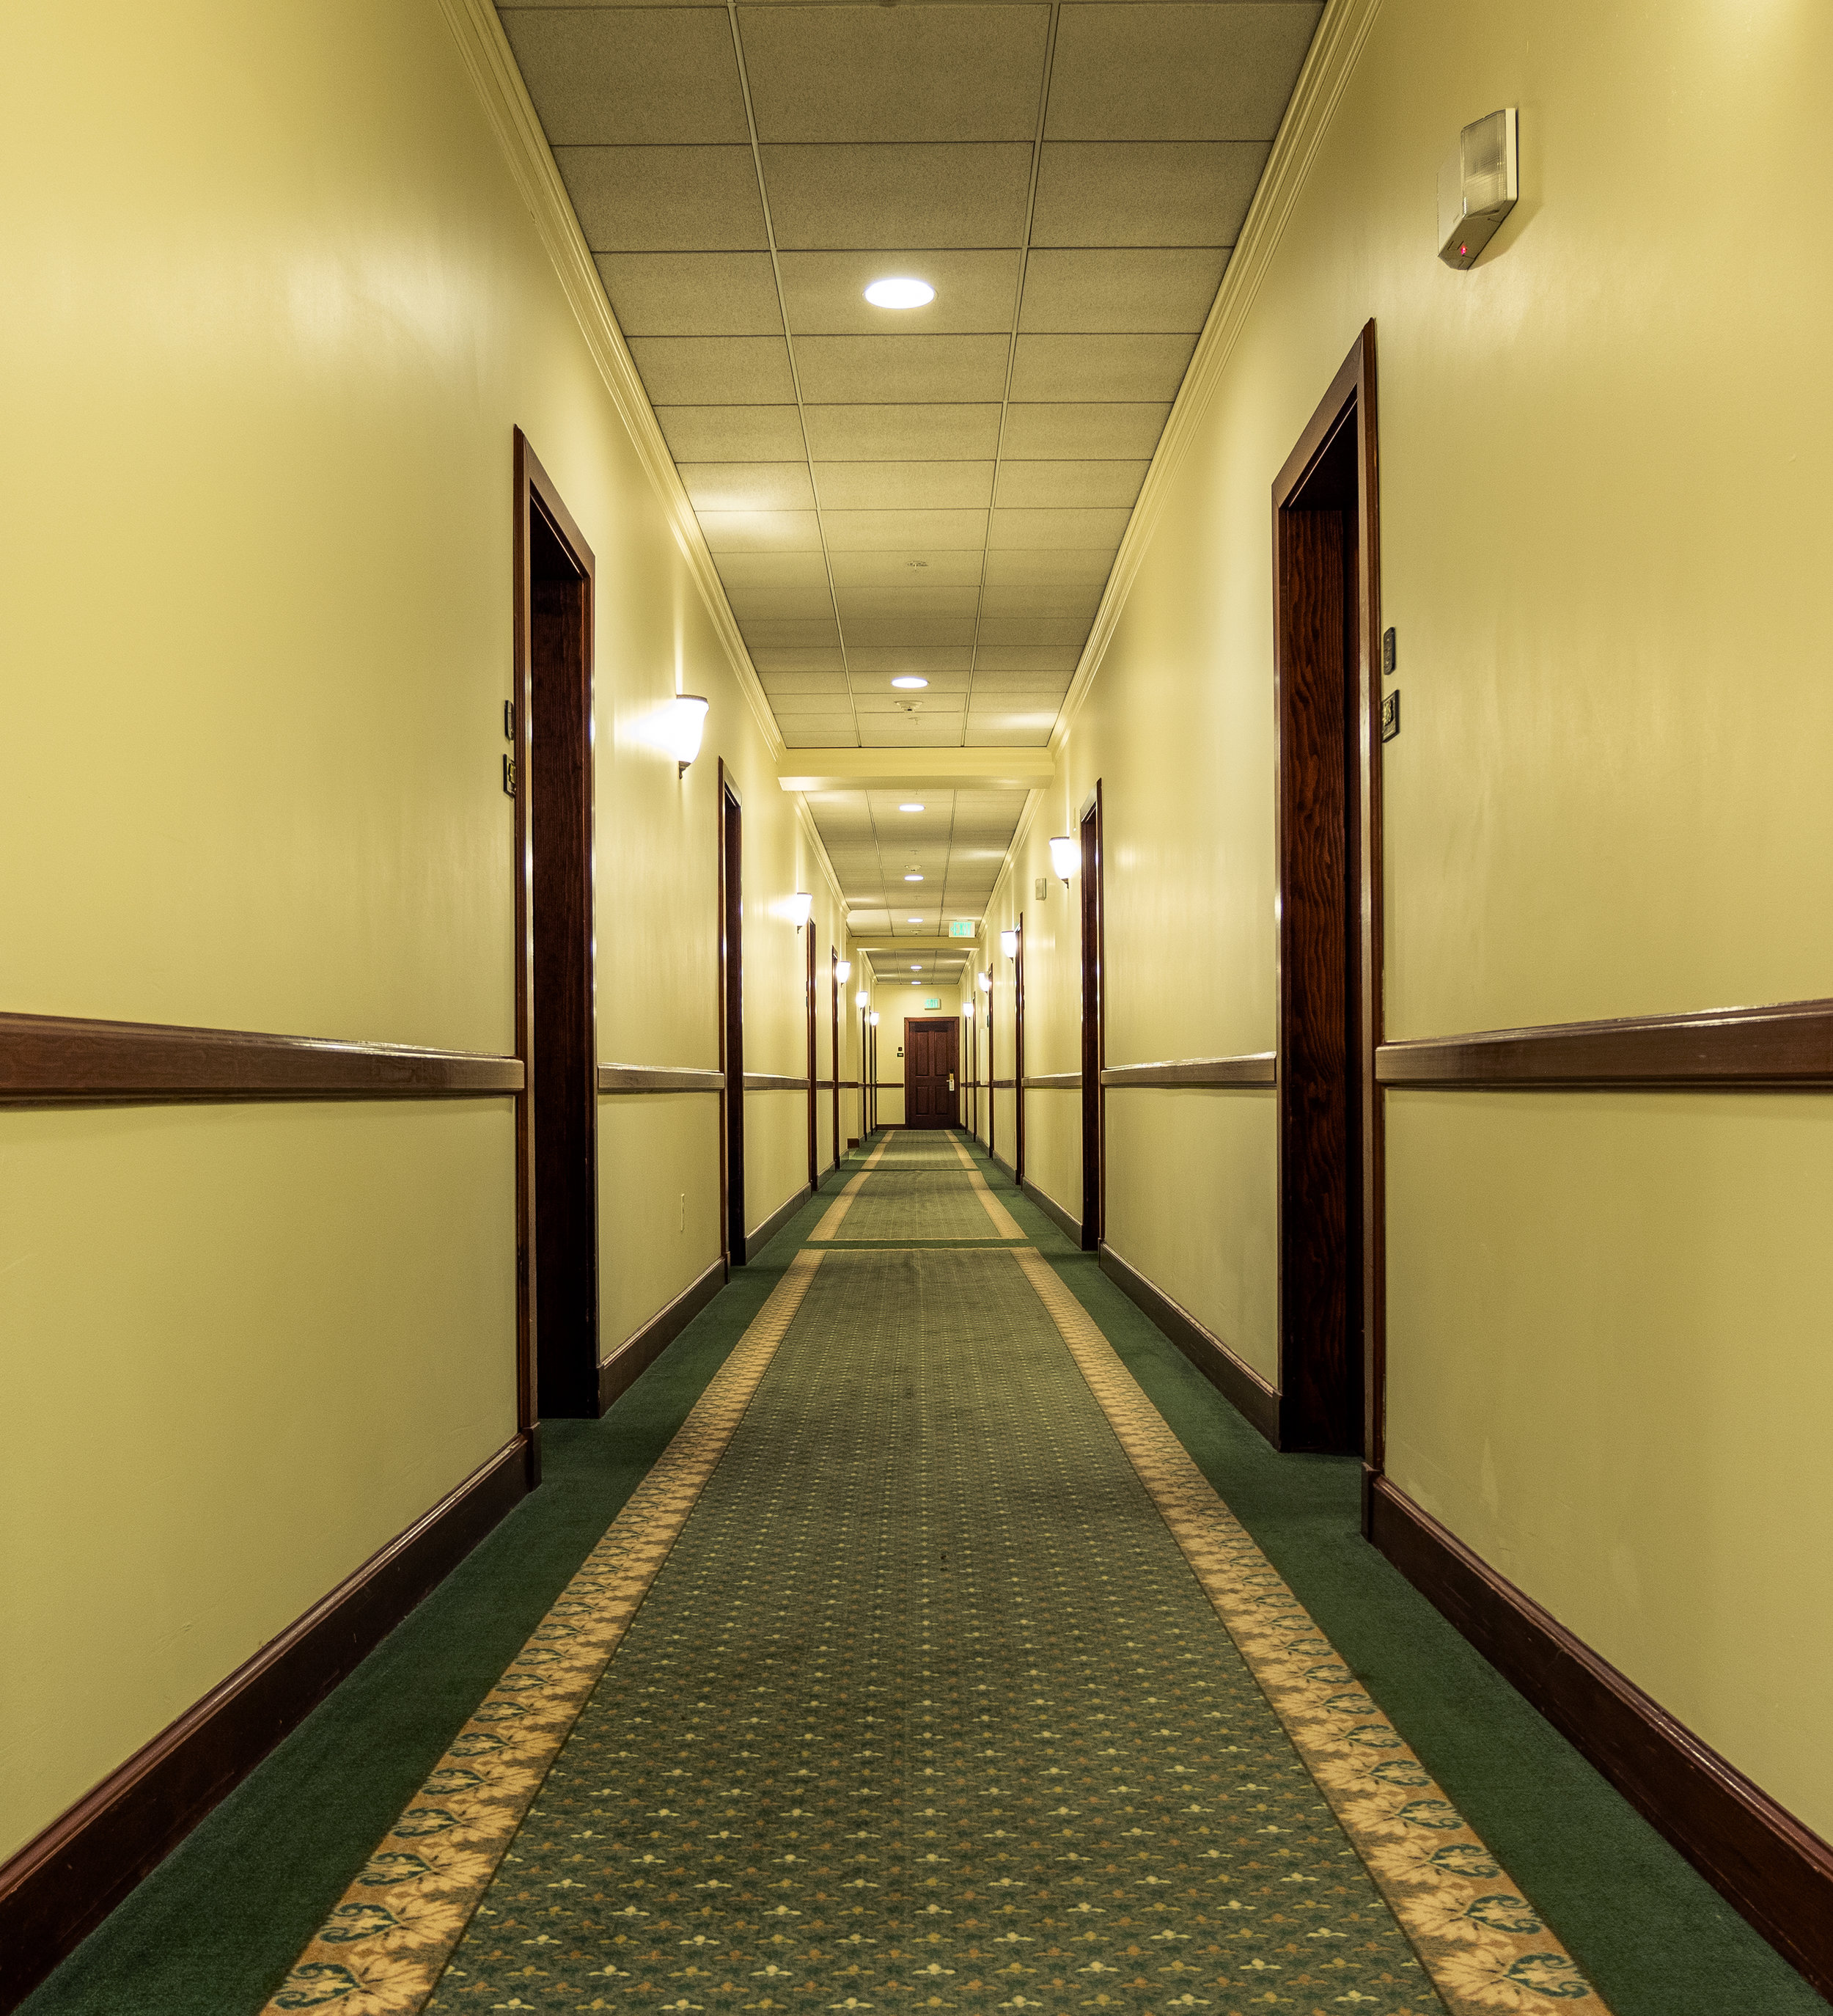 Best Western hallway - Pioneer Square, Seattle - Nathaniel Barber Blog